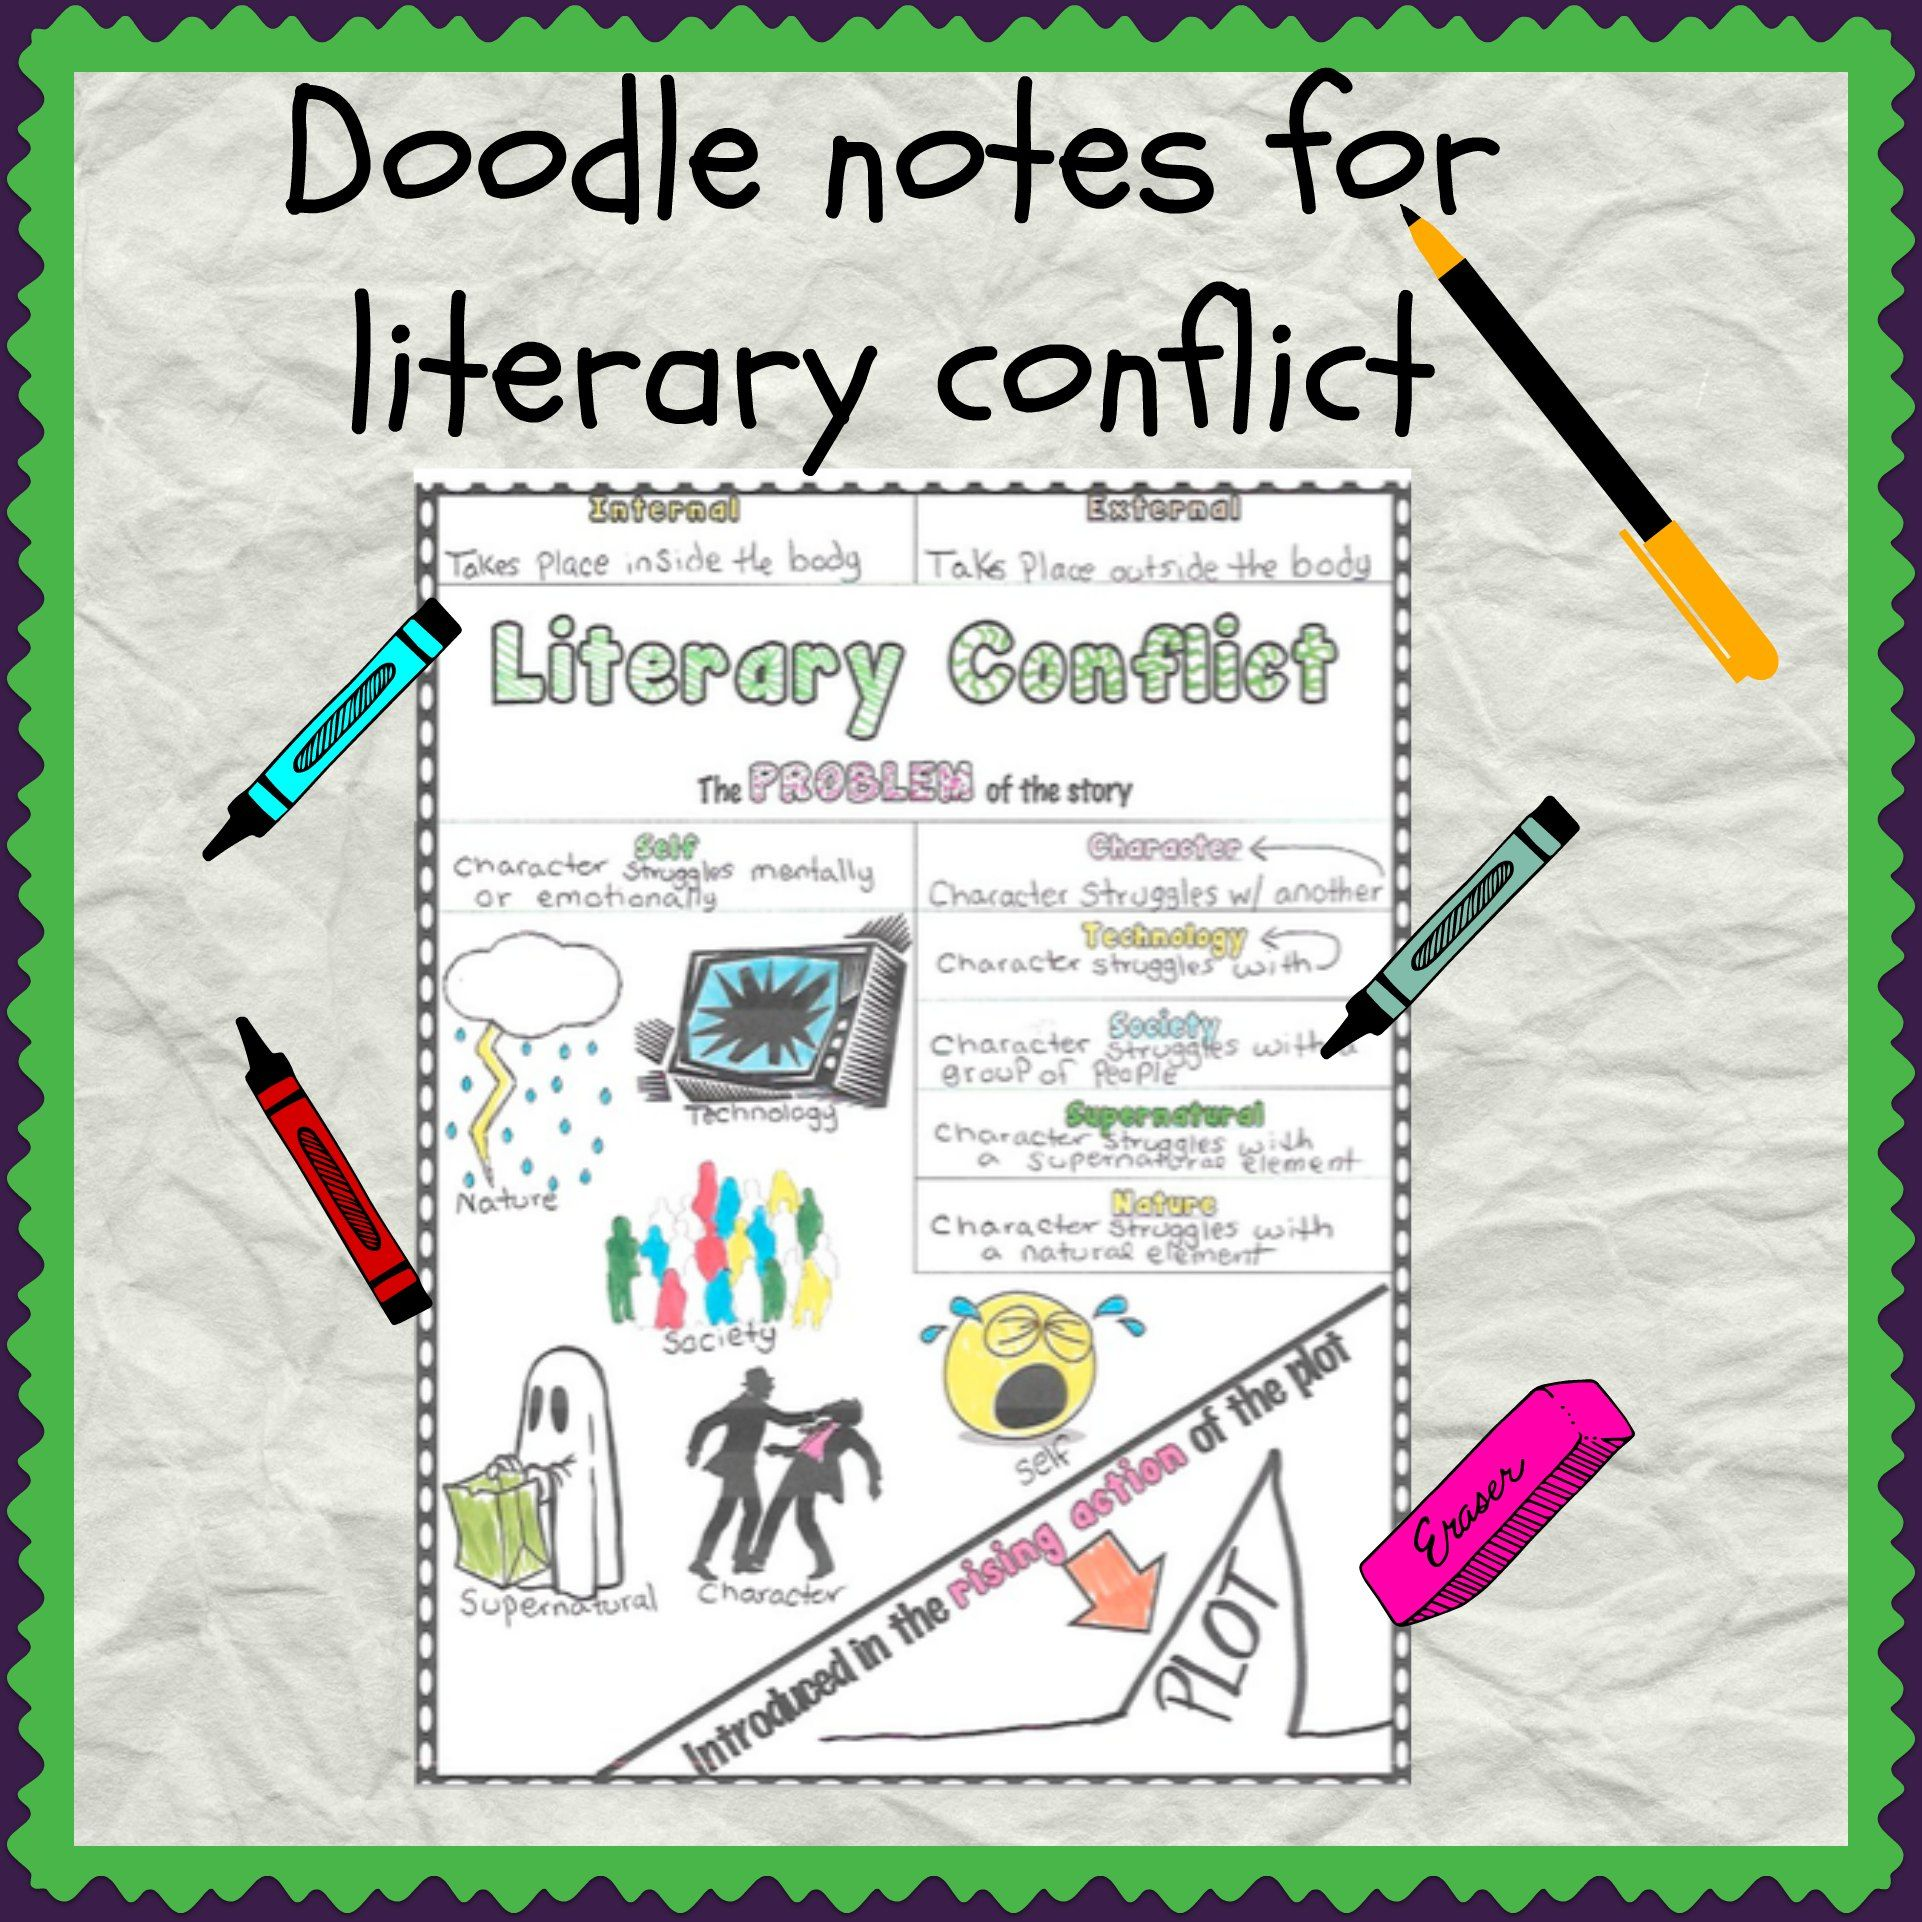 English Cheat Sheet Doodle Notes Literary Conflict